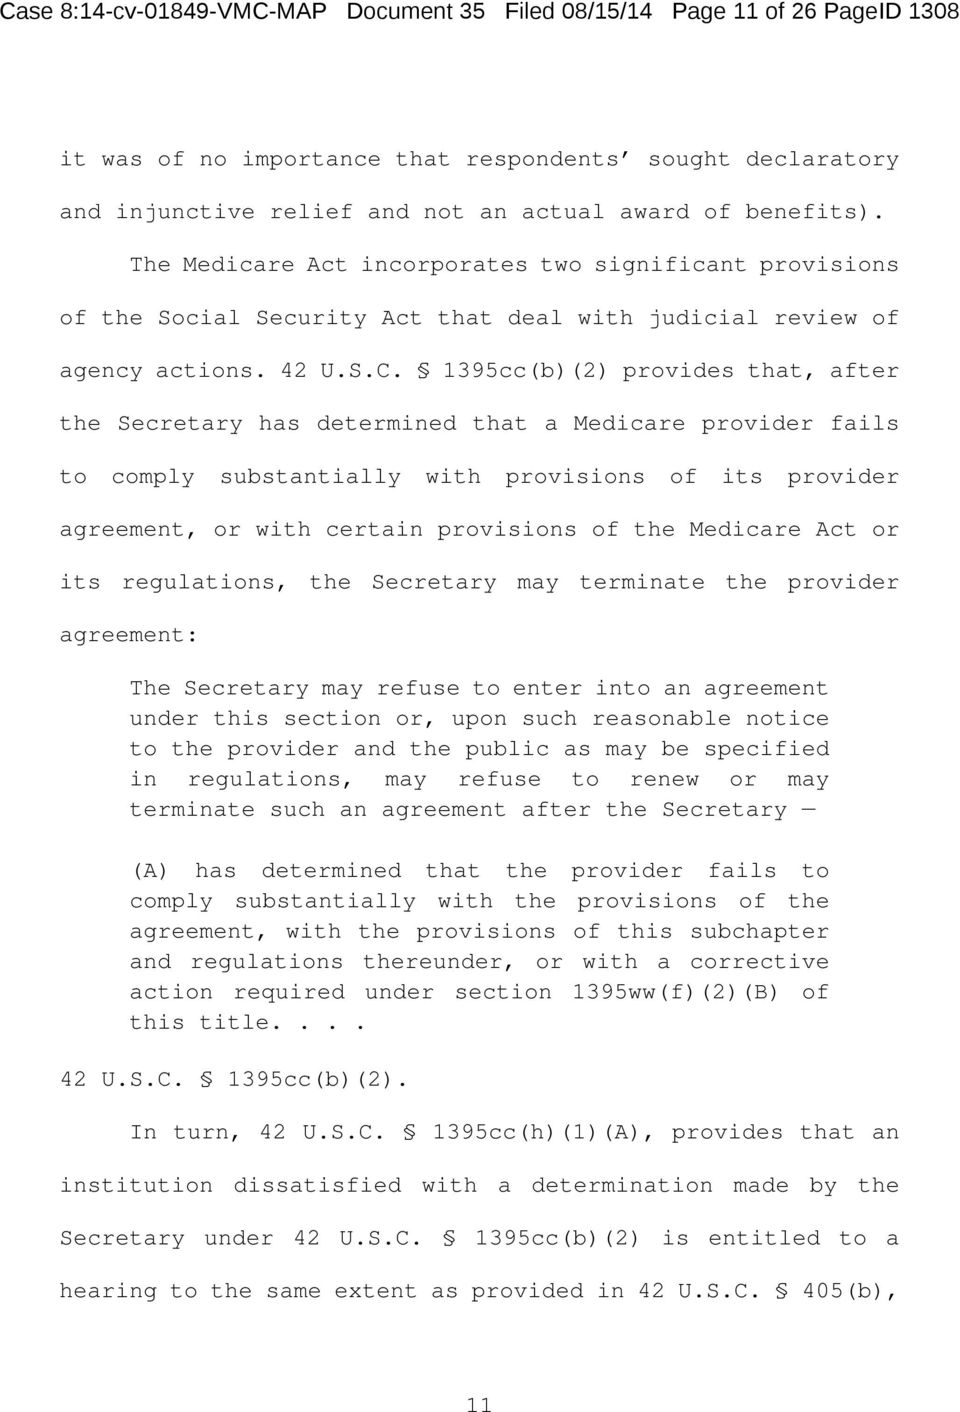 1395cc(b)(2) provides that, after the Secretary has determined that a Medicare provider fails to comply substantially with provisions of its provider agreement, or with certain provisions of the